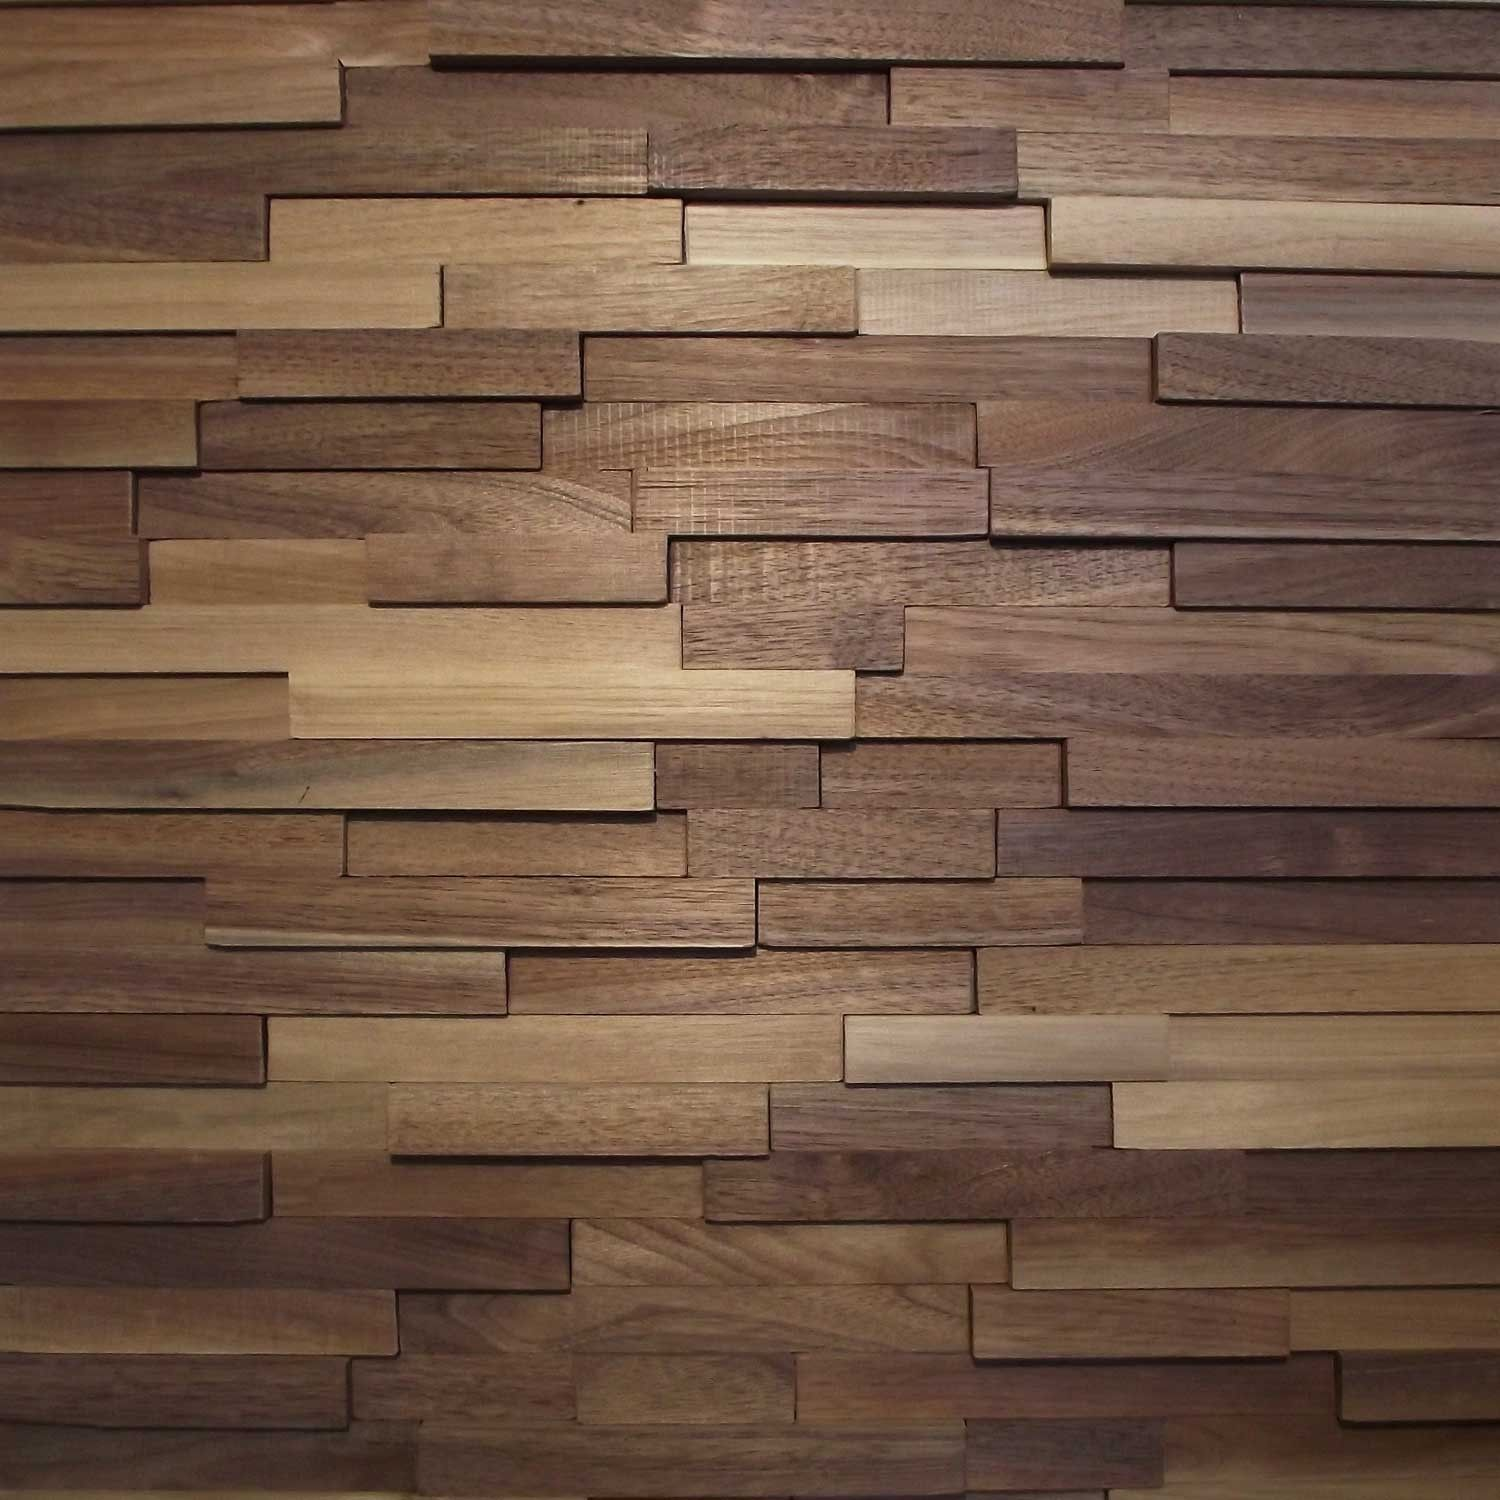 Sarasota and venice fl real estate home decor trends reclaimed accent wood walls - Design on wooden ...